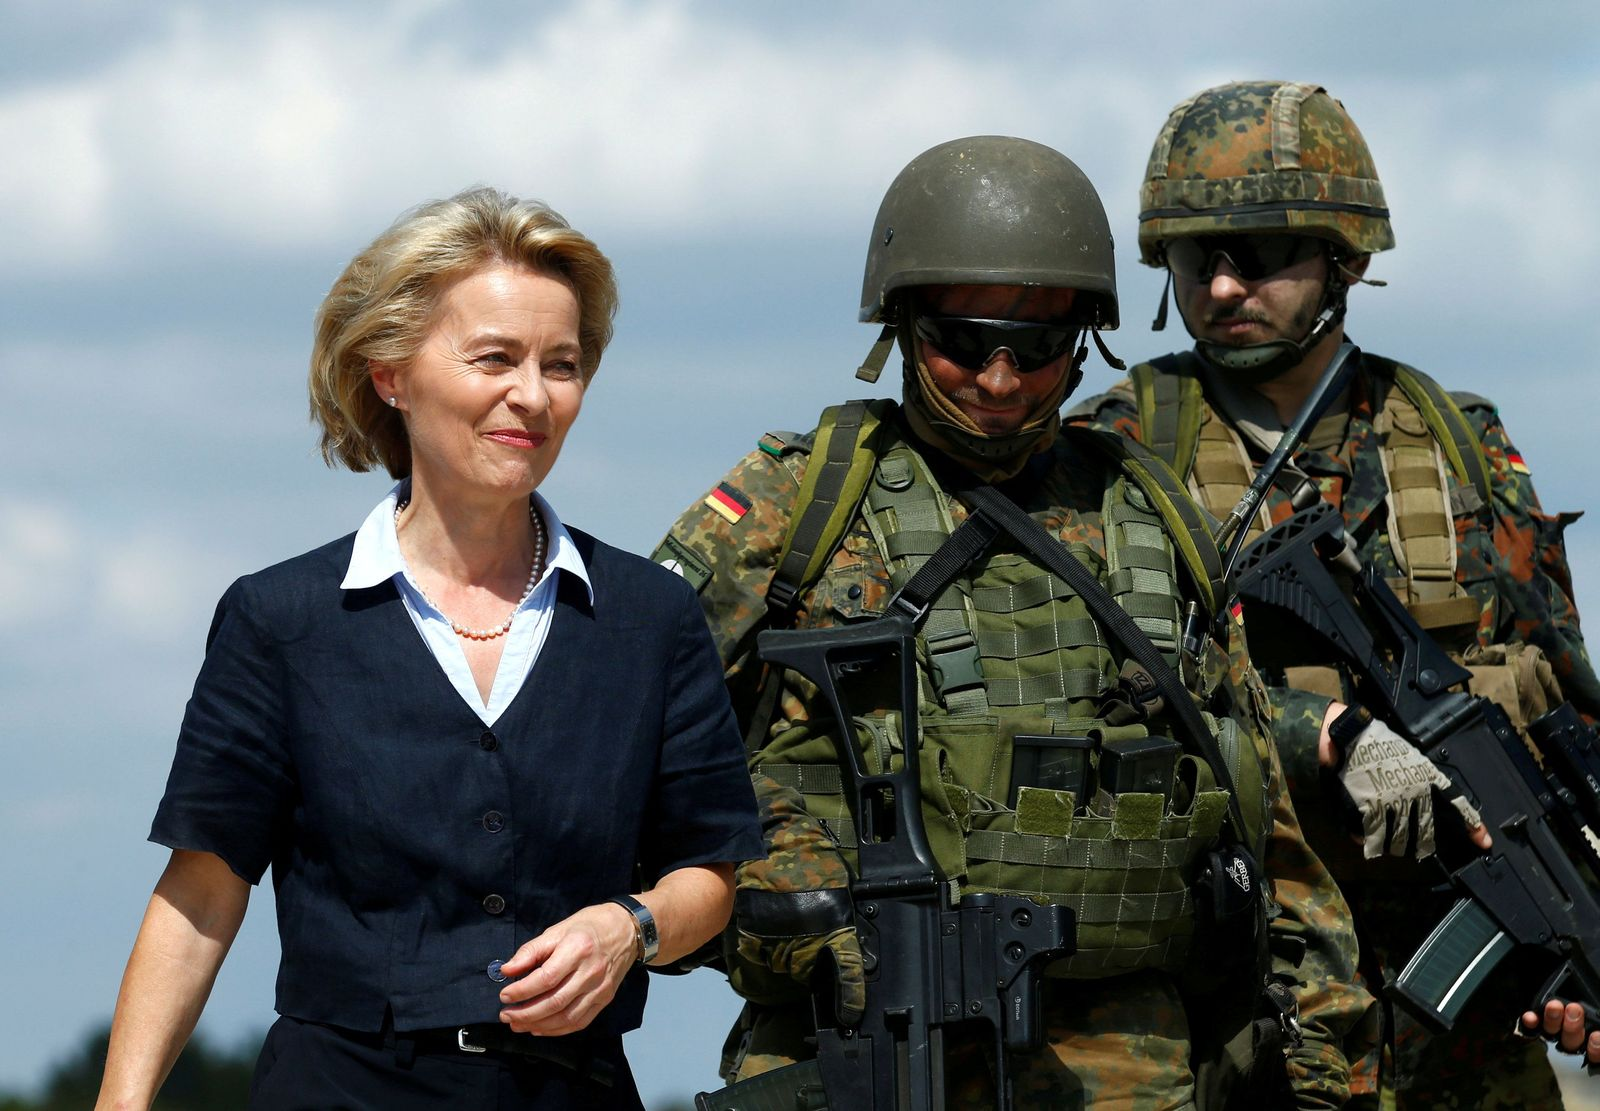 GERMANY-MILITARY/CONSULTANTS